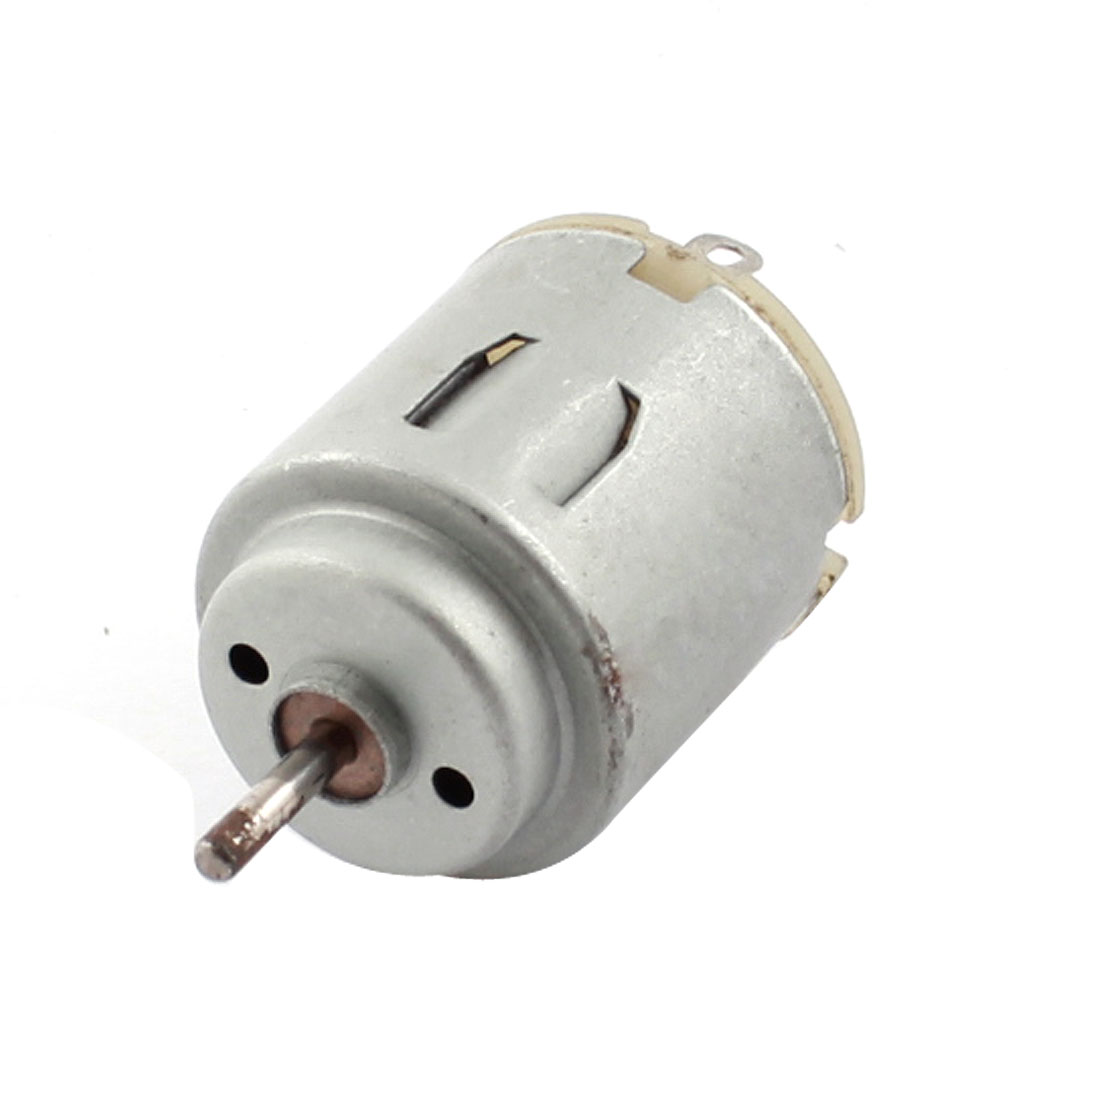 DC1.5-6V 2mm Dia Shaft 16500r/min Rotary Speed Output High Torque Cylinder Shaped Electric Motor